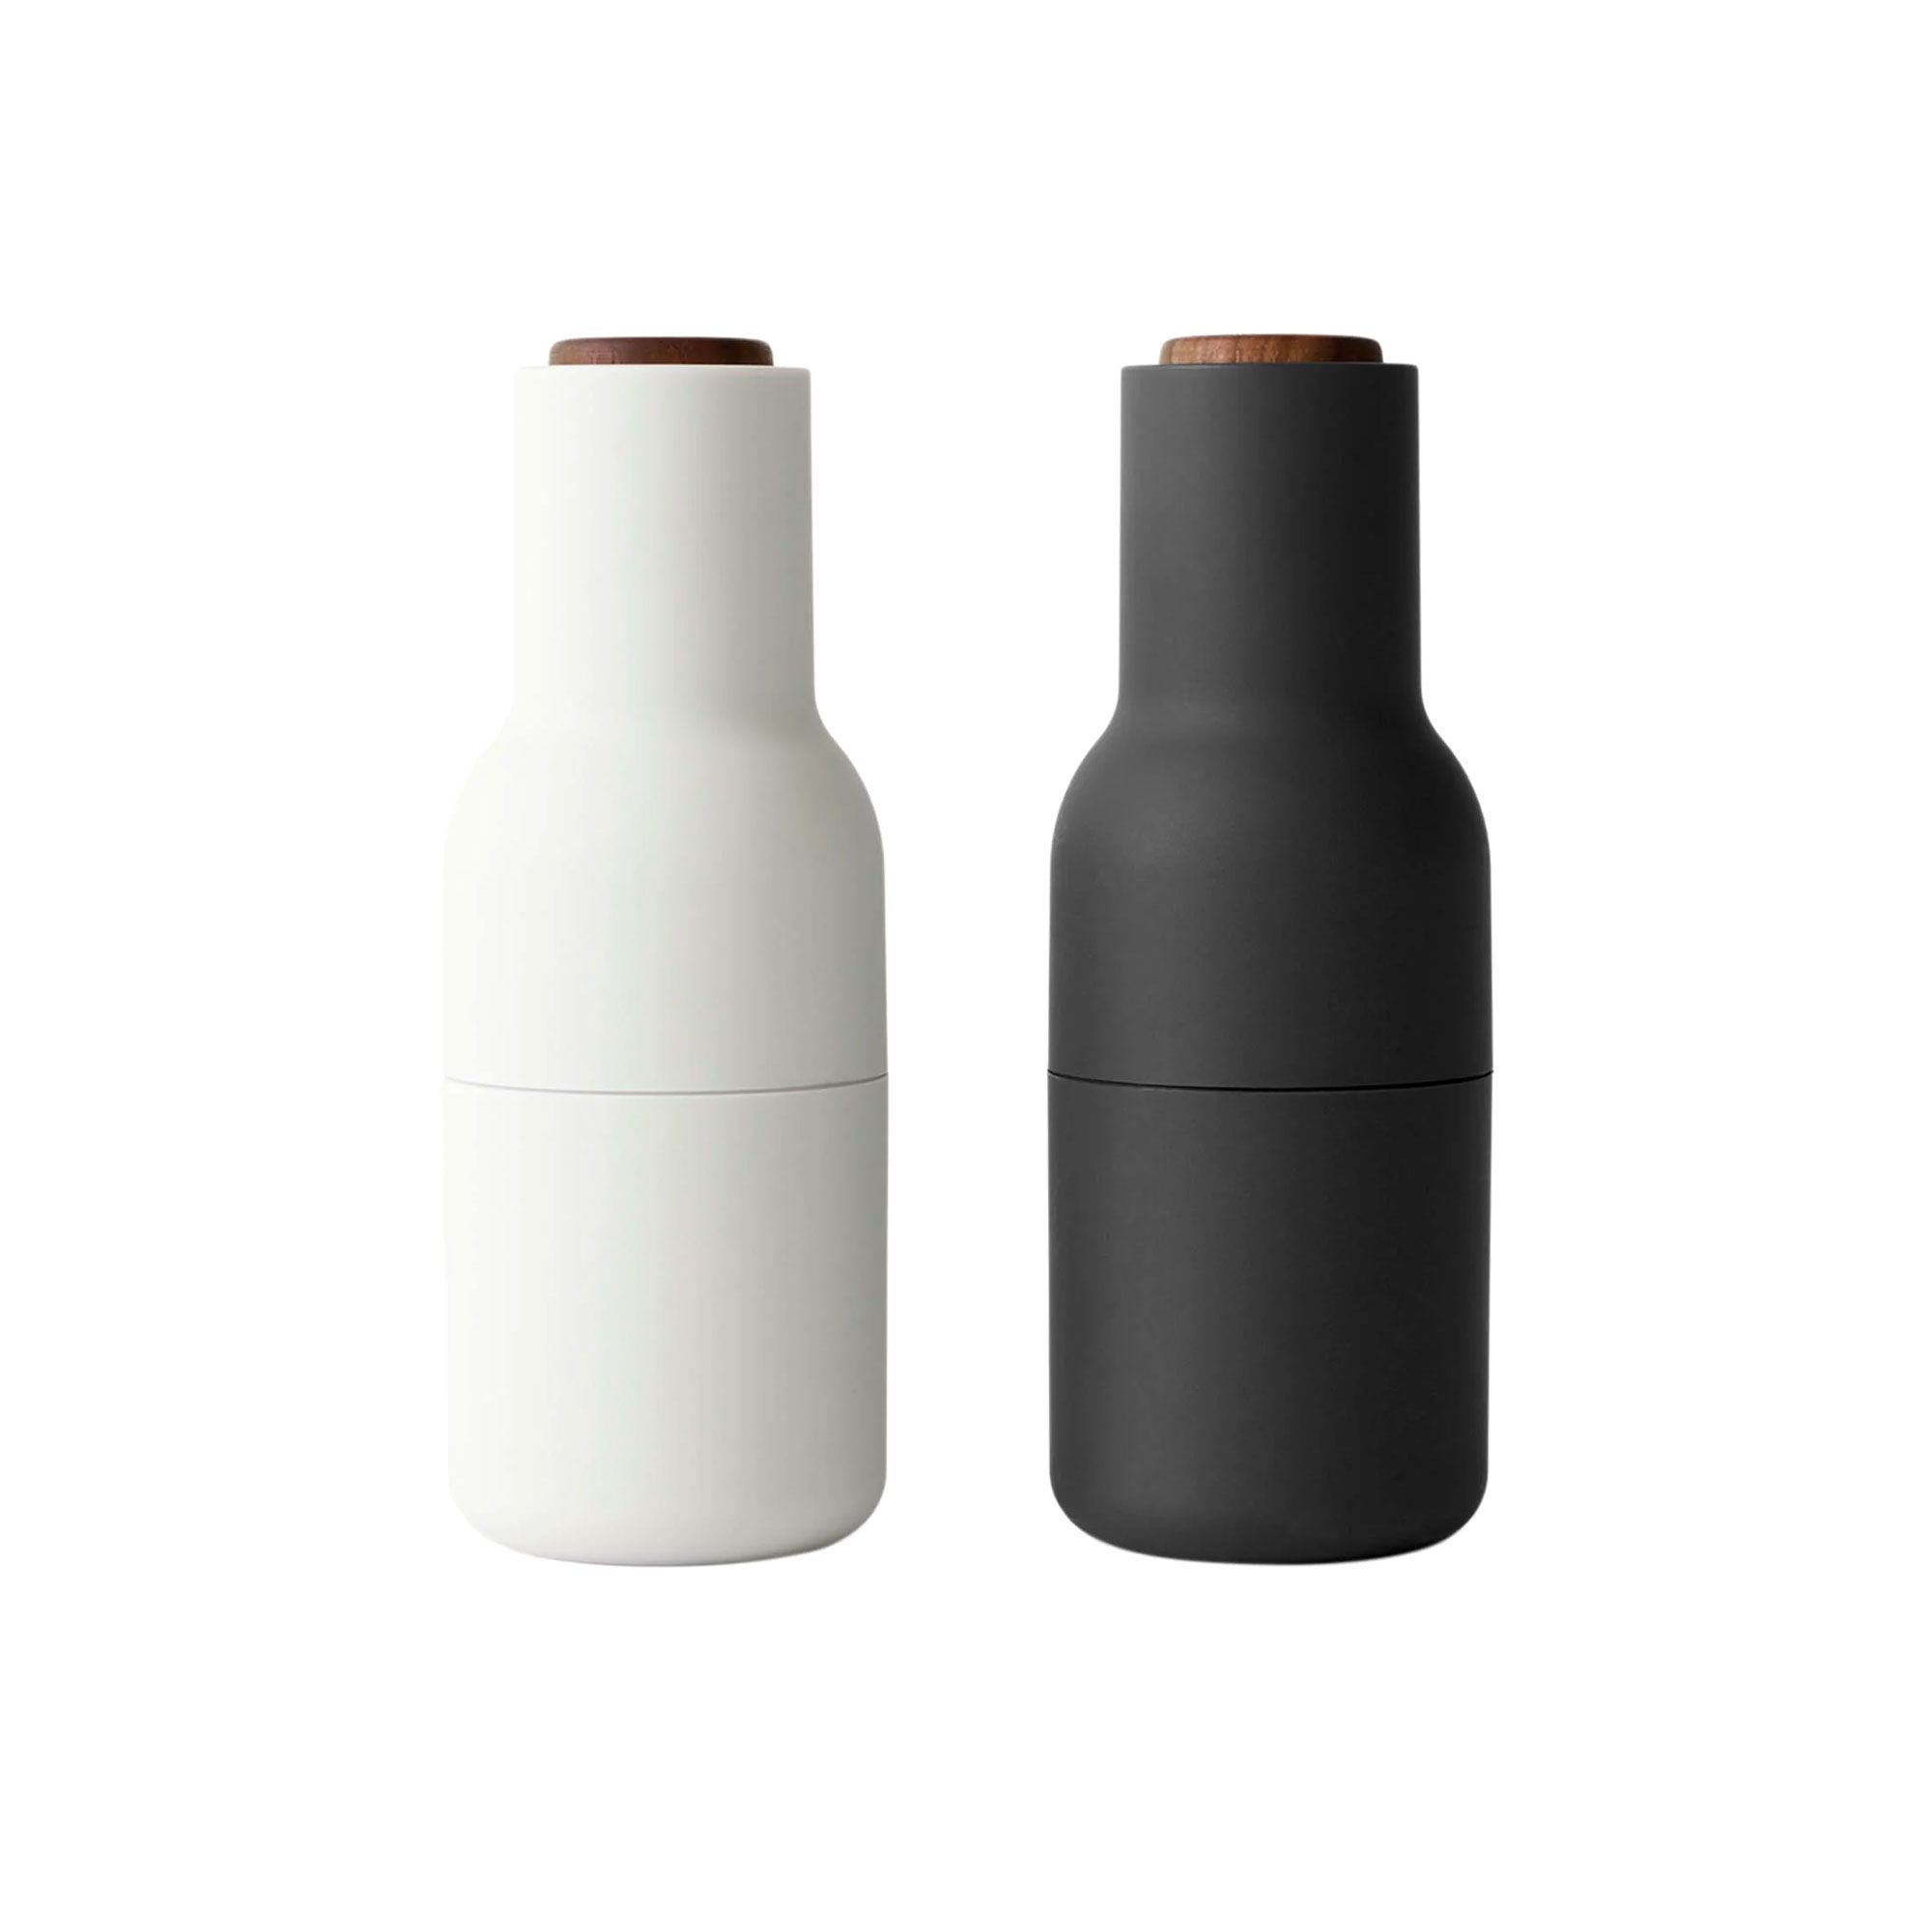 Menu Salt & Pepper Bottle Grinder Set w/ Walnut Lid Ash Carbon